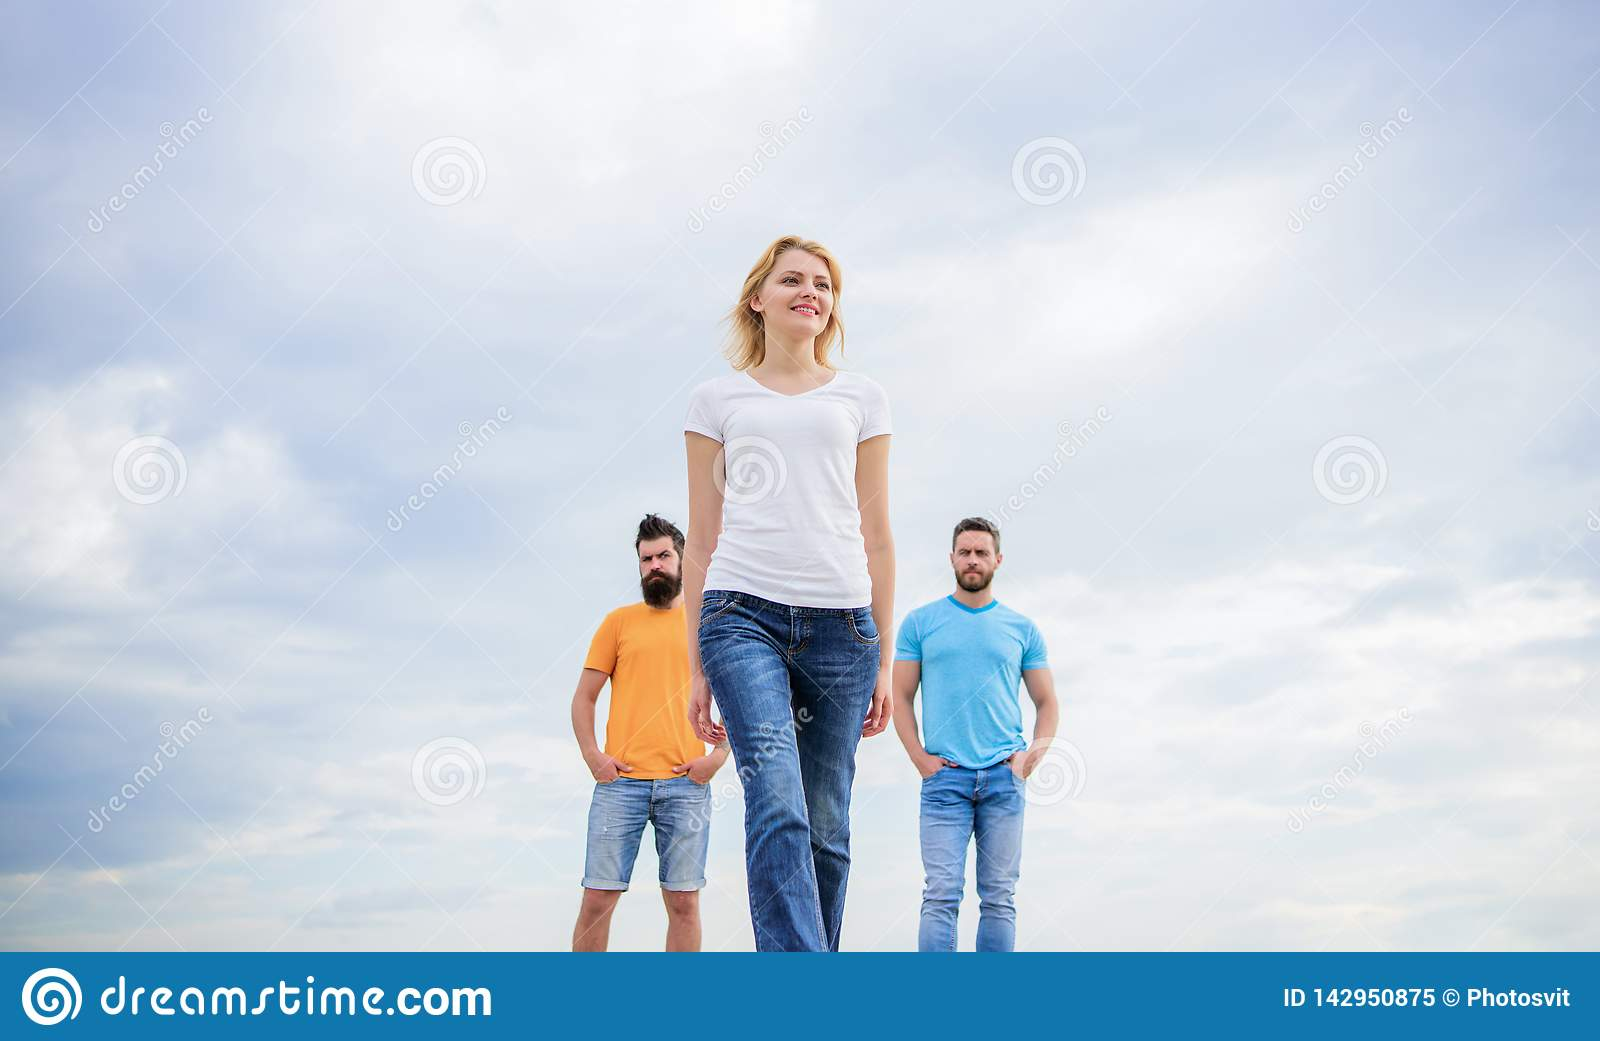 What makes successful female leader. Girl leader qualities possess naturally. Leadership concept. Woman in front of men